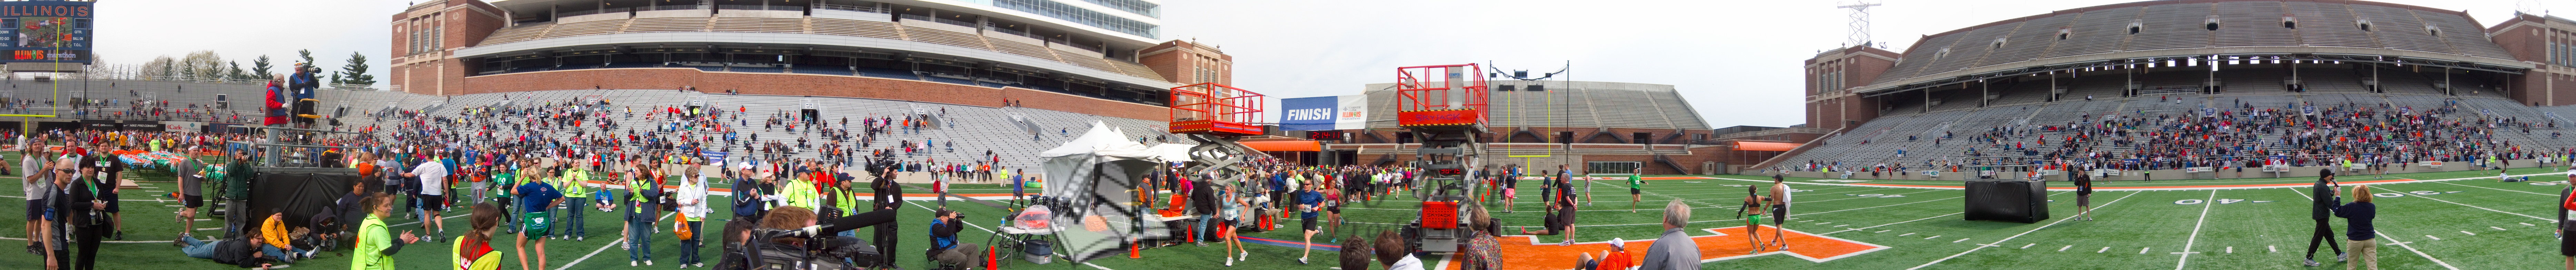 p131-1-p131-8half  Finish time 2:14:11 Illinois Marathon 2011 Memorial Stadium Finish Line